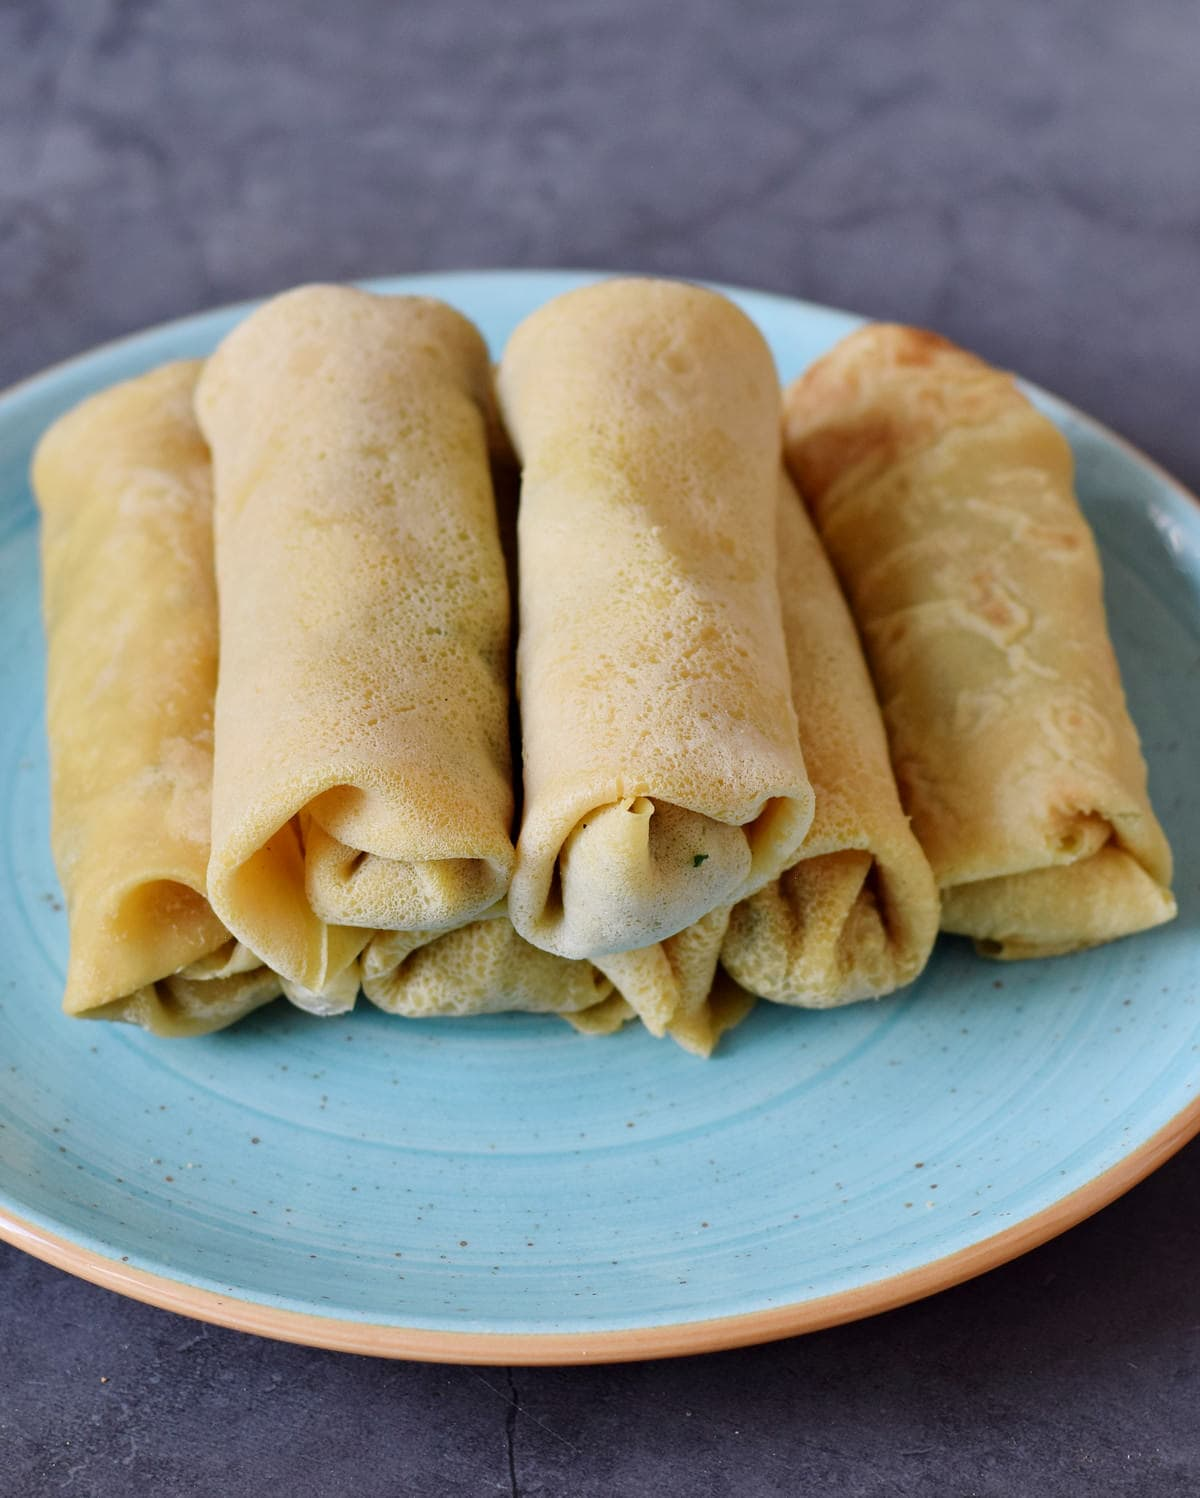 six rolled up stuffed hearty wraps on a turquoise plate